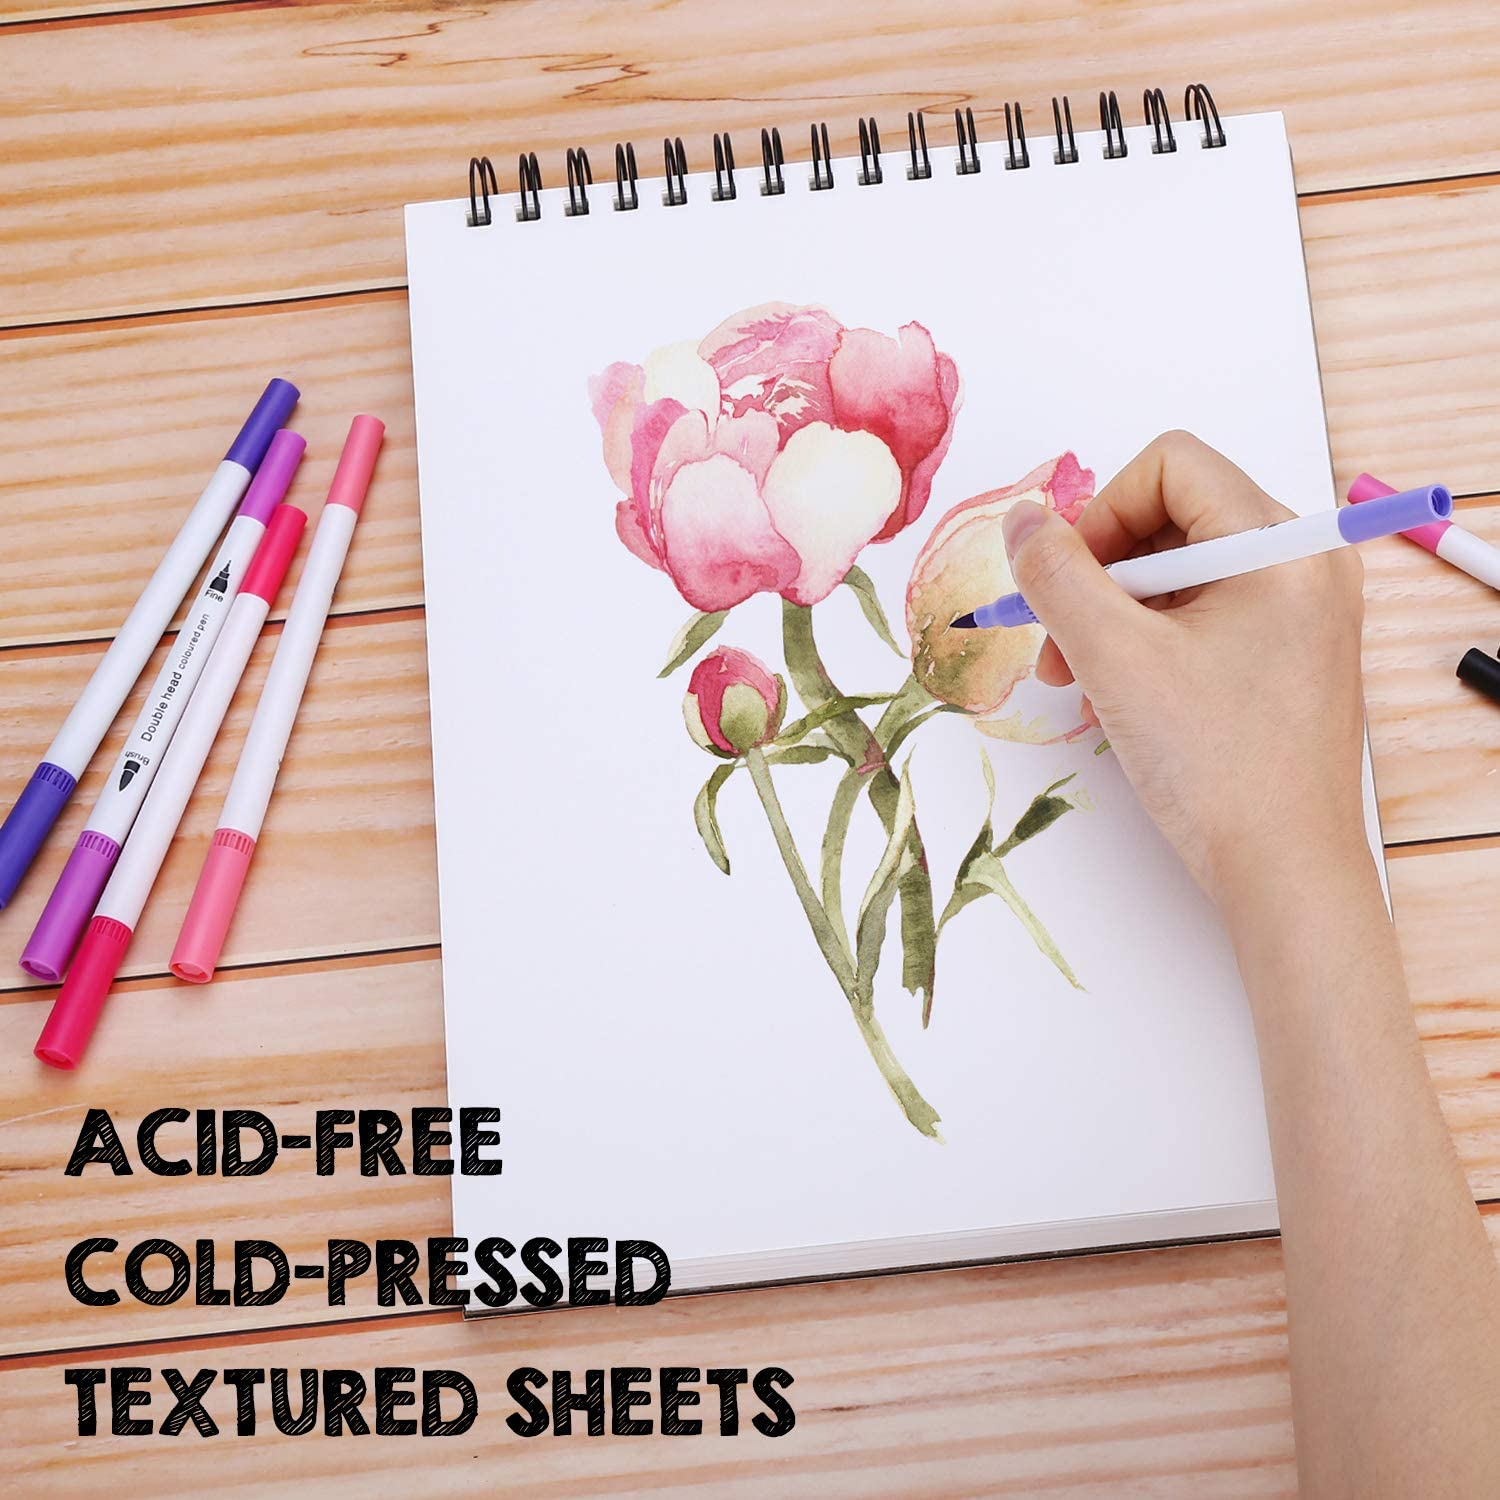 2 Pack AGPTEk Watercolor Paper Pad 2 Packs 9 X 12 inches 140lb//300gsms Acid Free Great for Watercolor Painting and Wet Media Paper Pad 70 Sheets